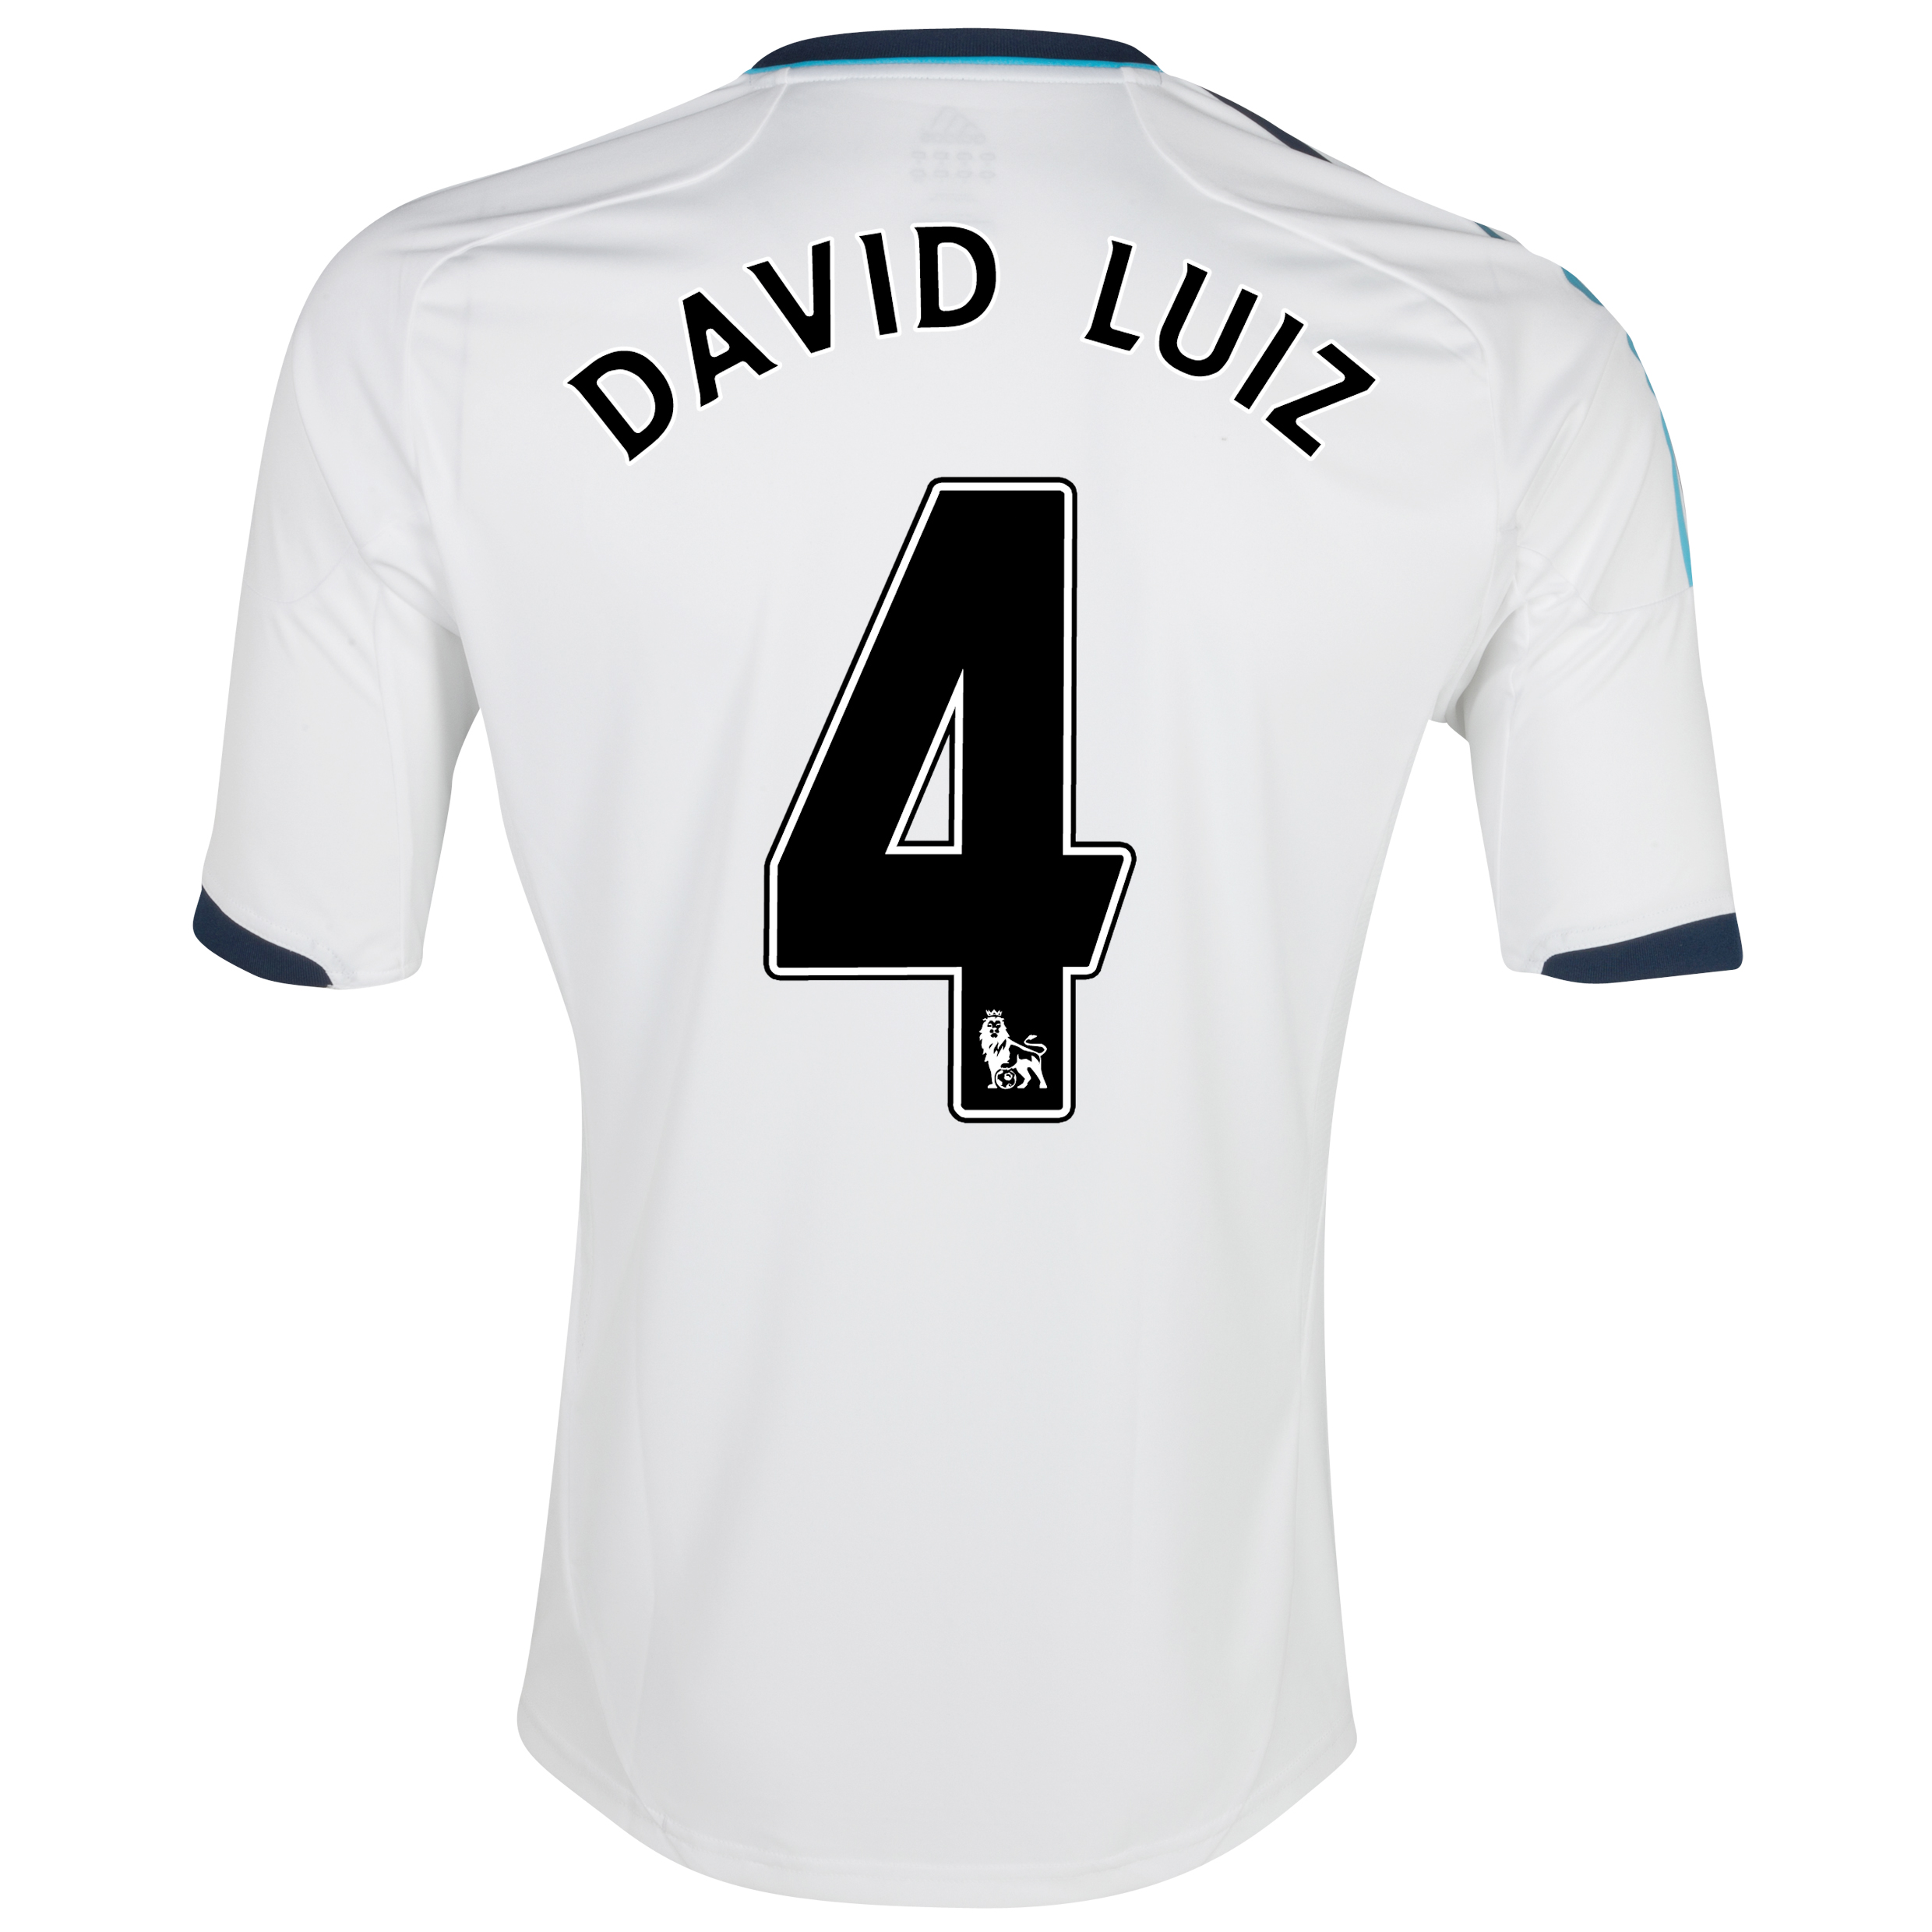 Chelsea Away Shirt 2012/13 with David Luiz 4 printing